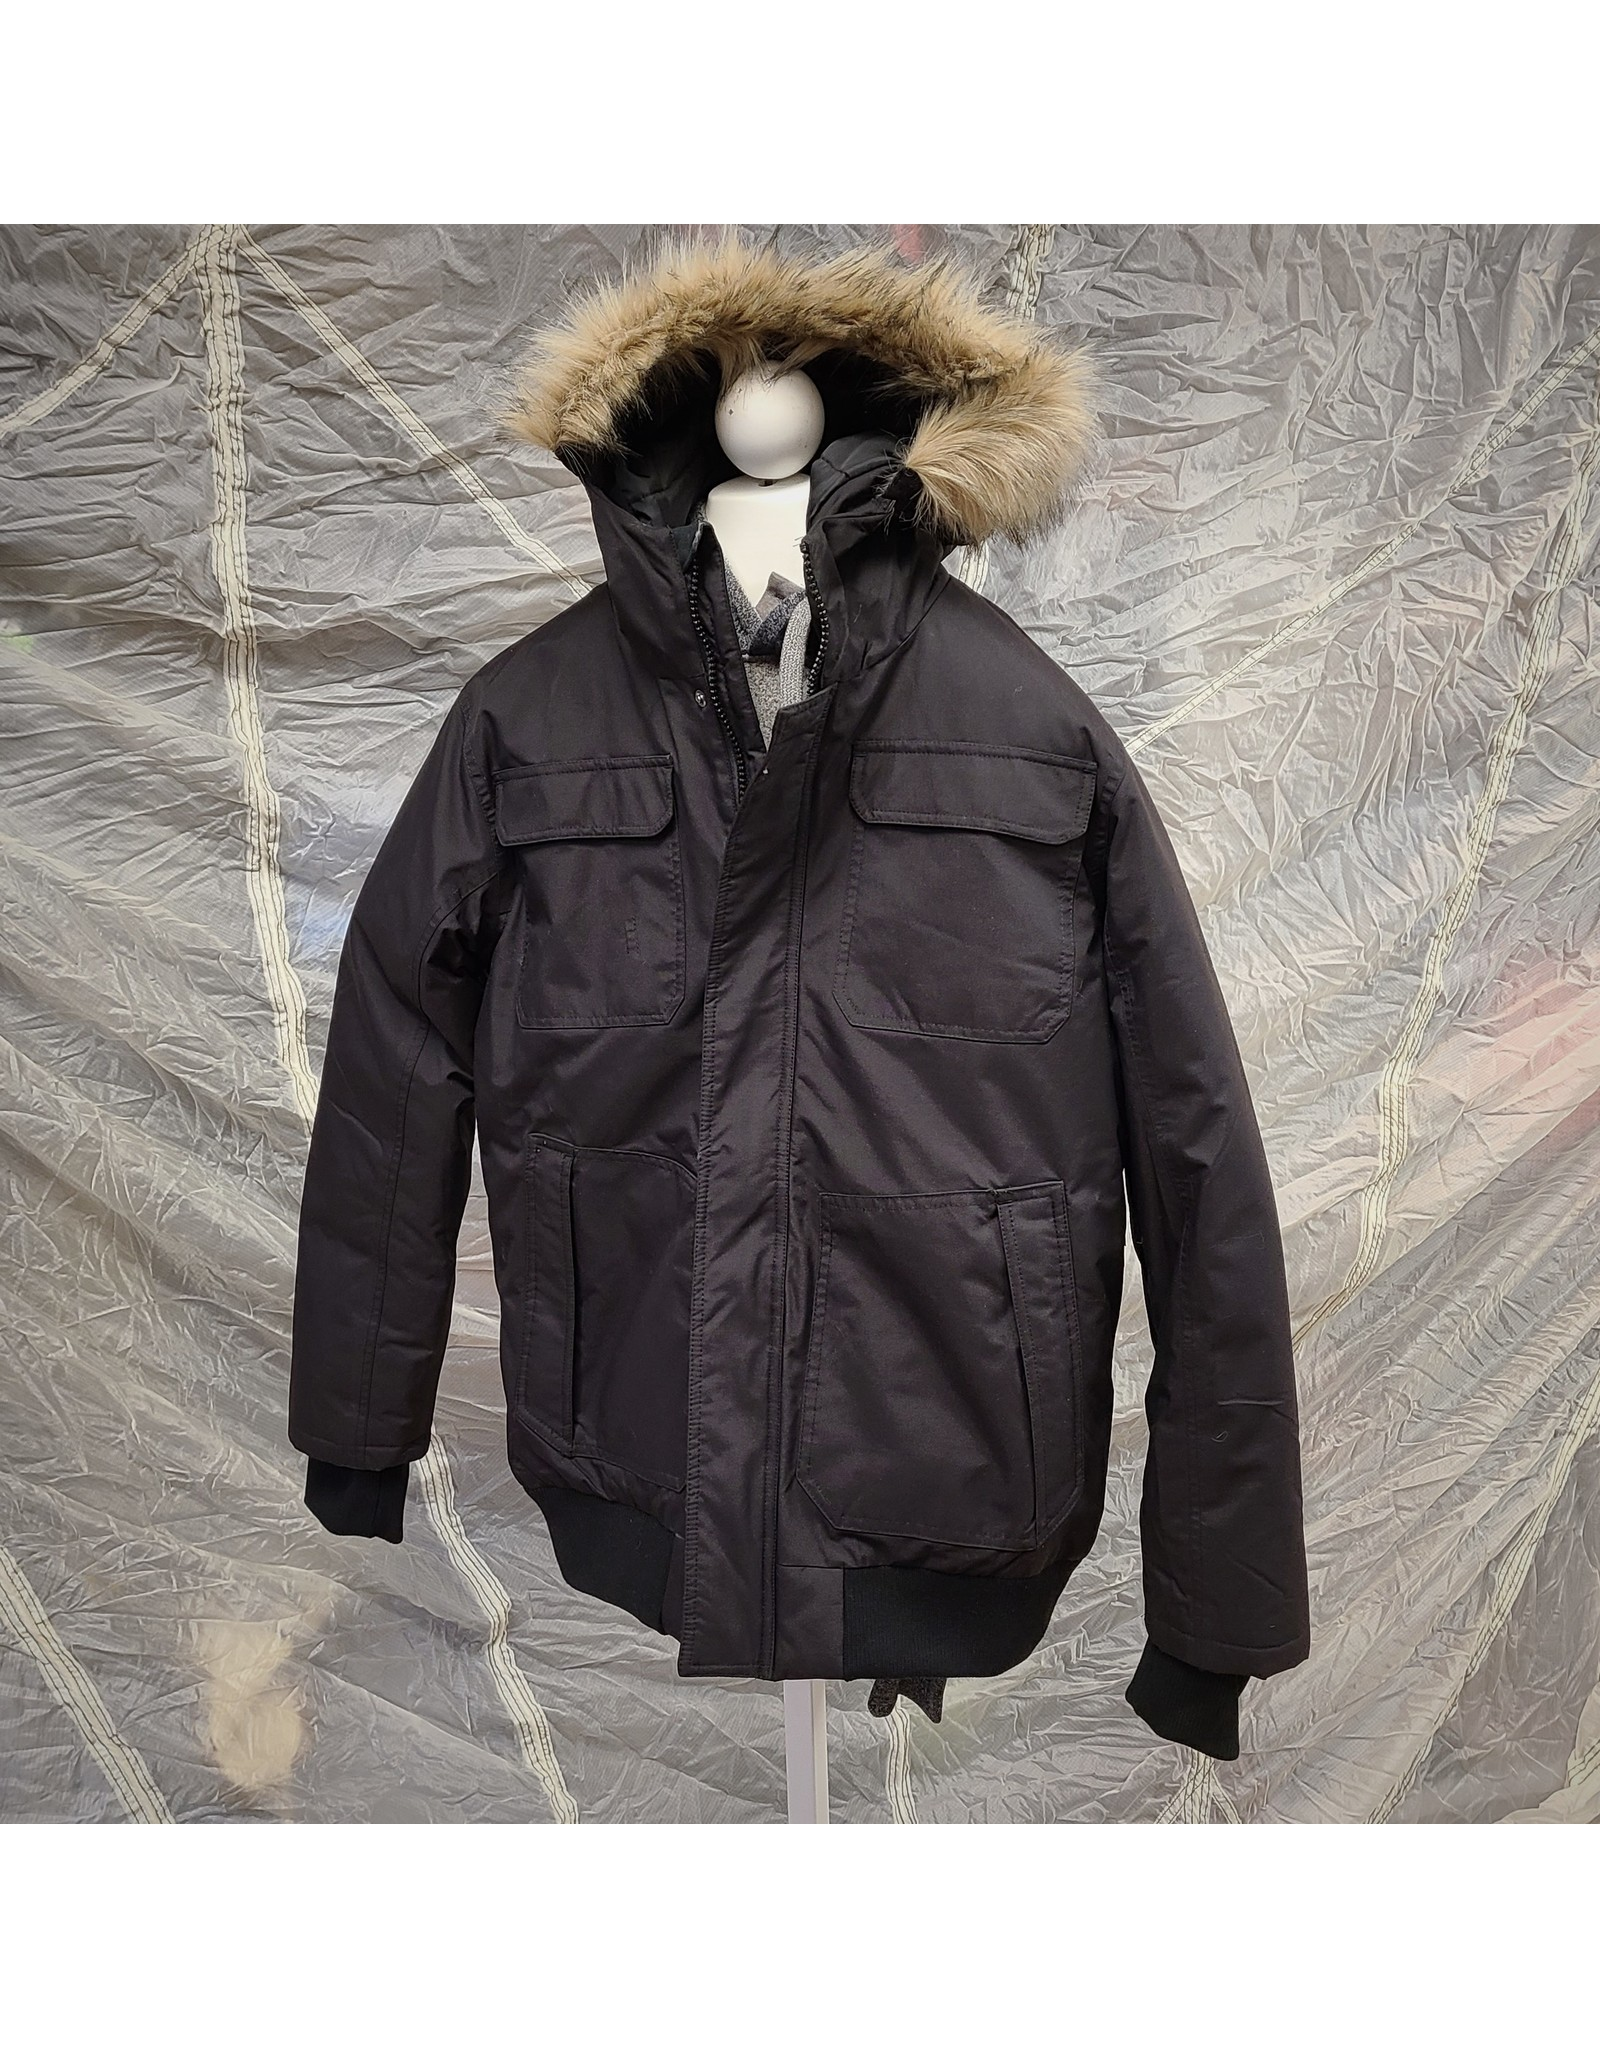 WORLD FAMOUS SPORTS WAYLAND INSULATED COMBER JACKET (MEN'S)